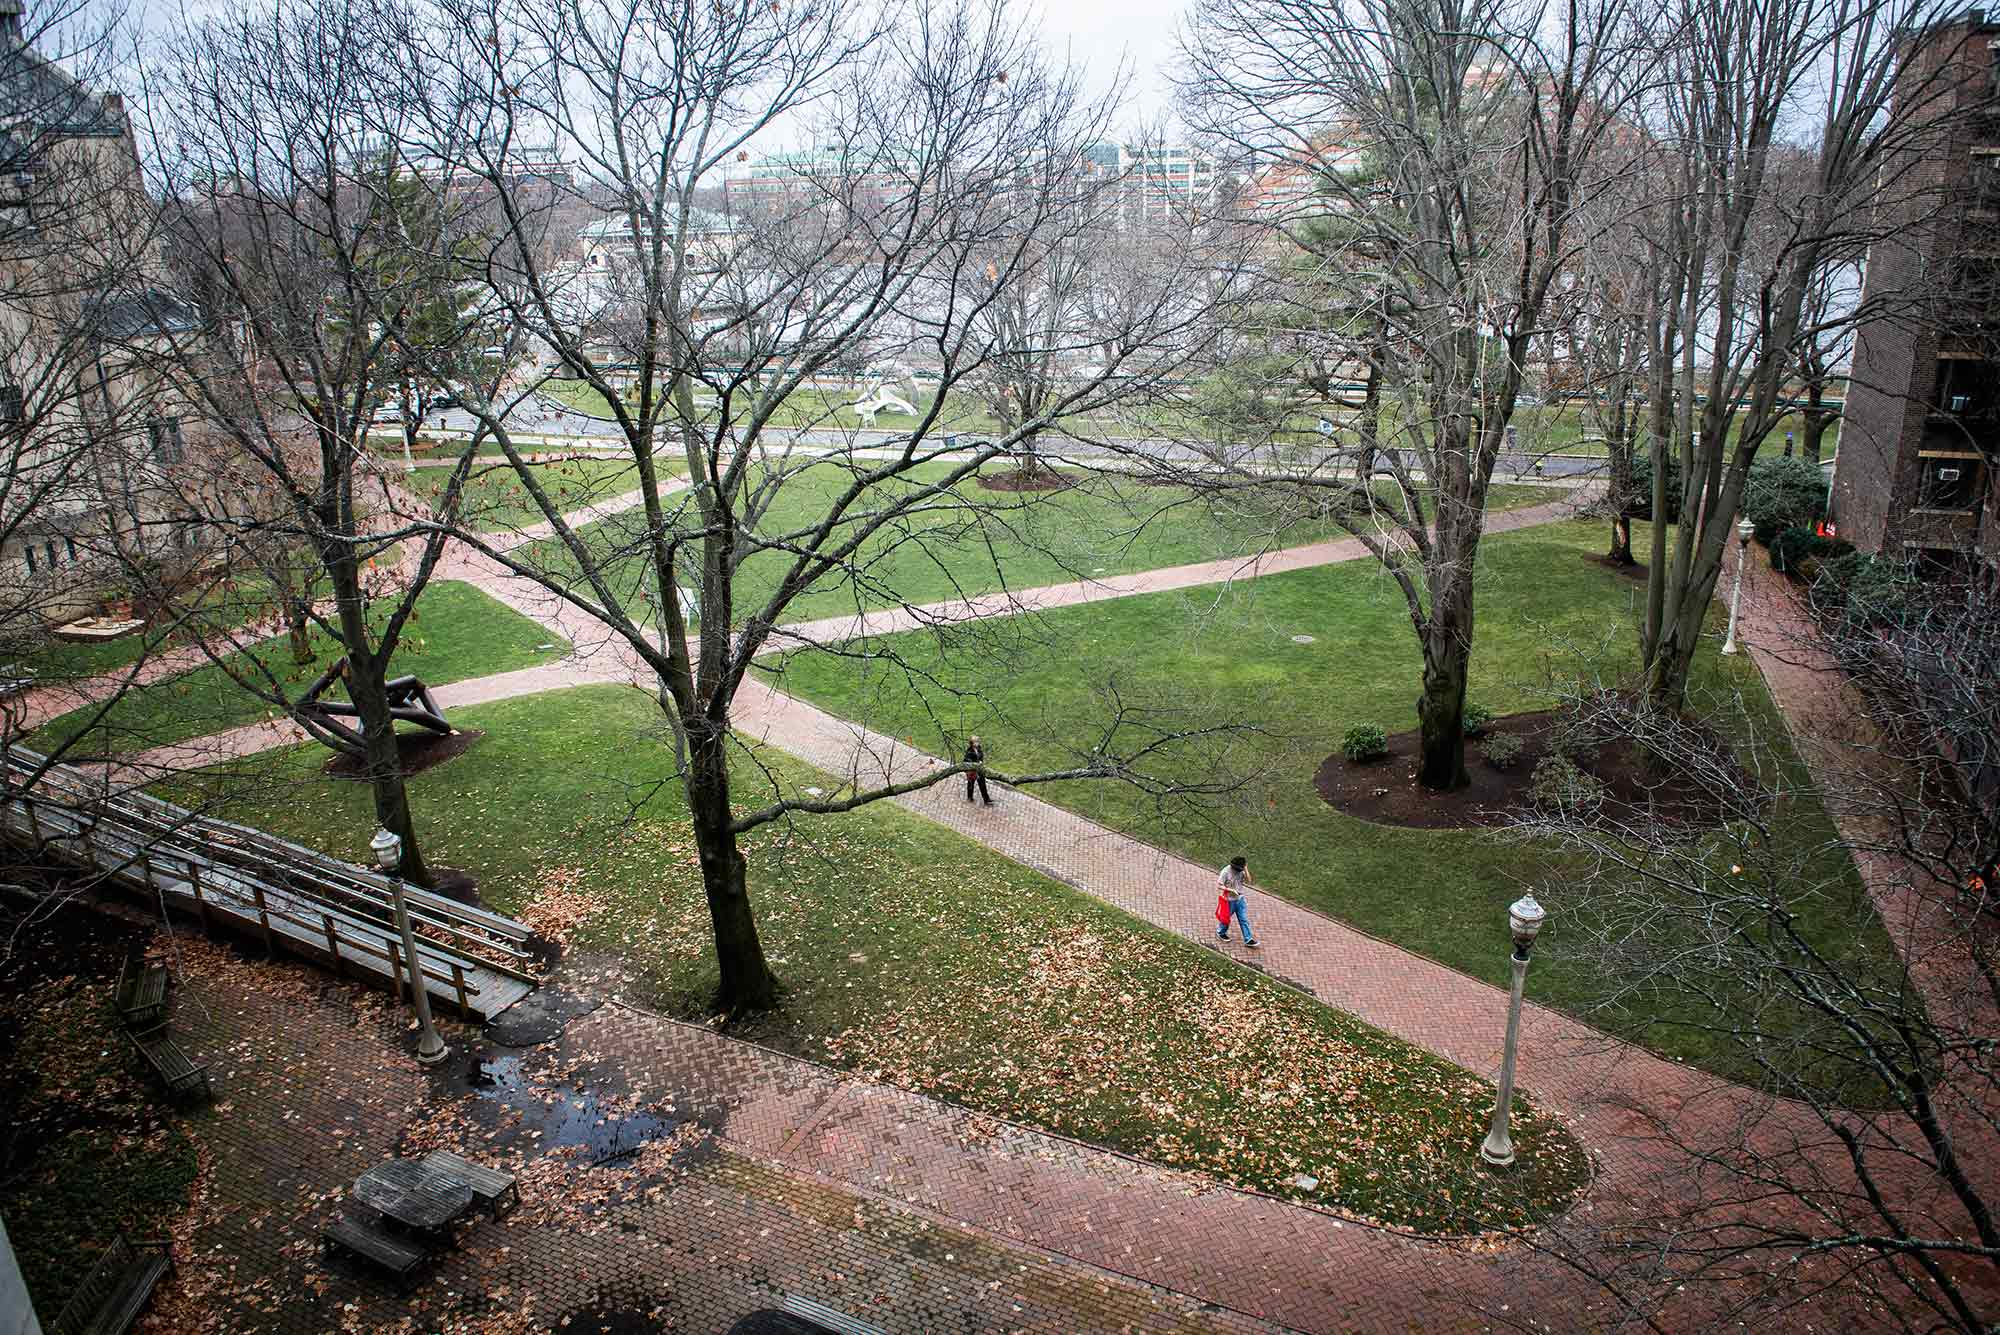 Photo of brick paths criss-crossing at BU Beach, a few people walk down the path. The trees are bare and are without leaves.